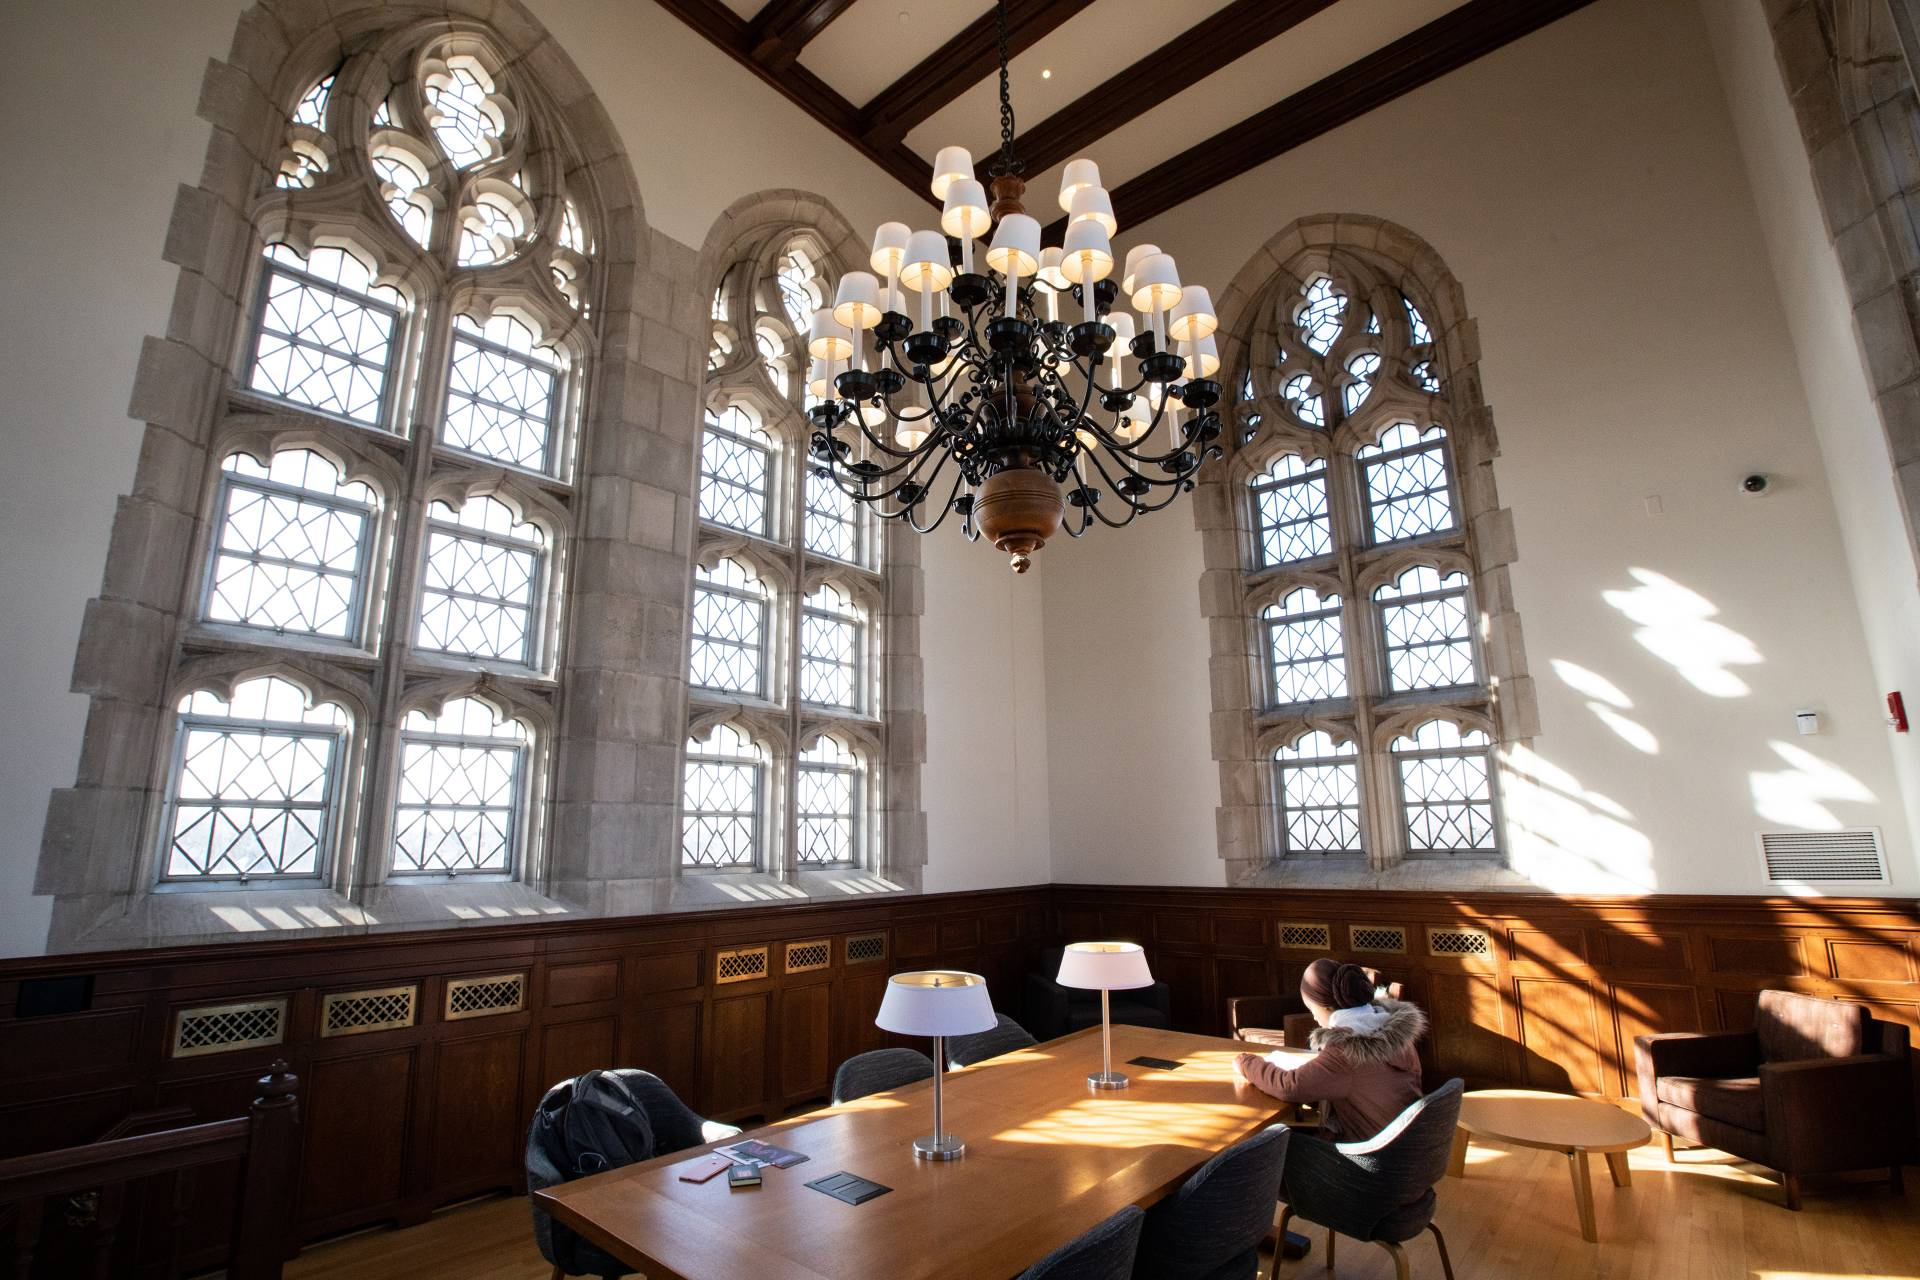 Student studying in room with large high windows and chandeliers